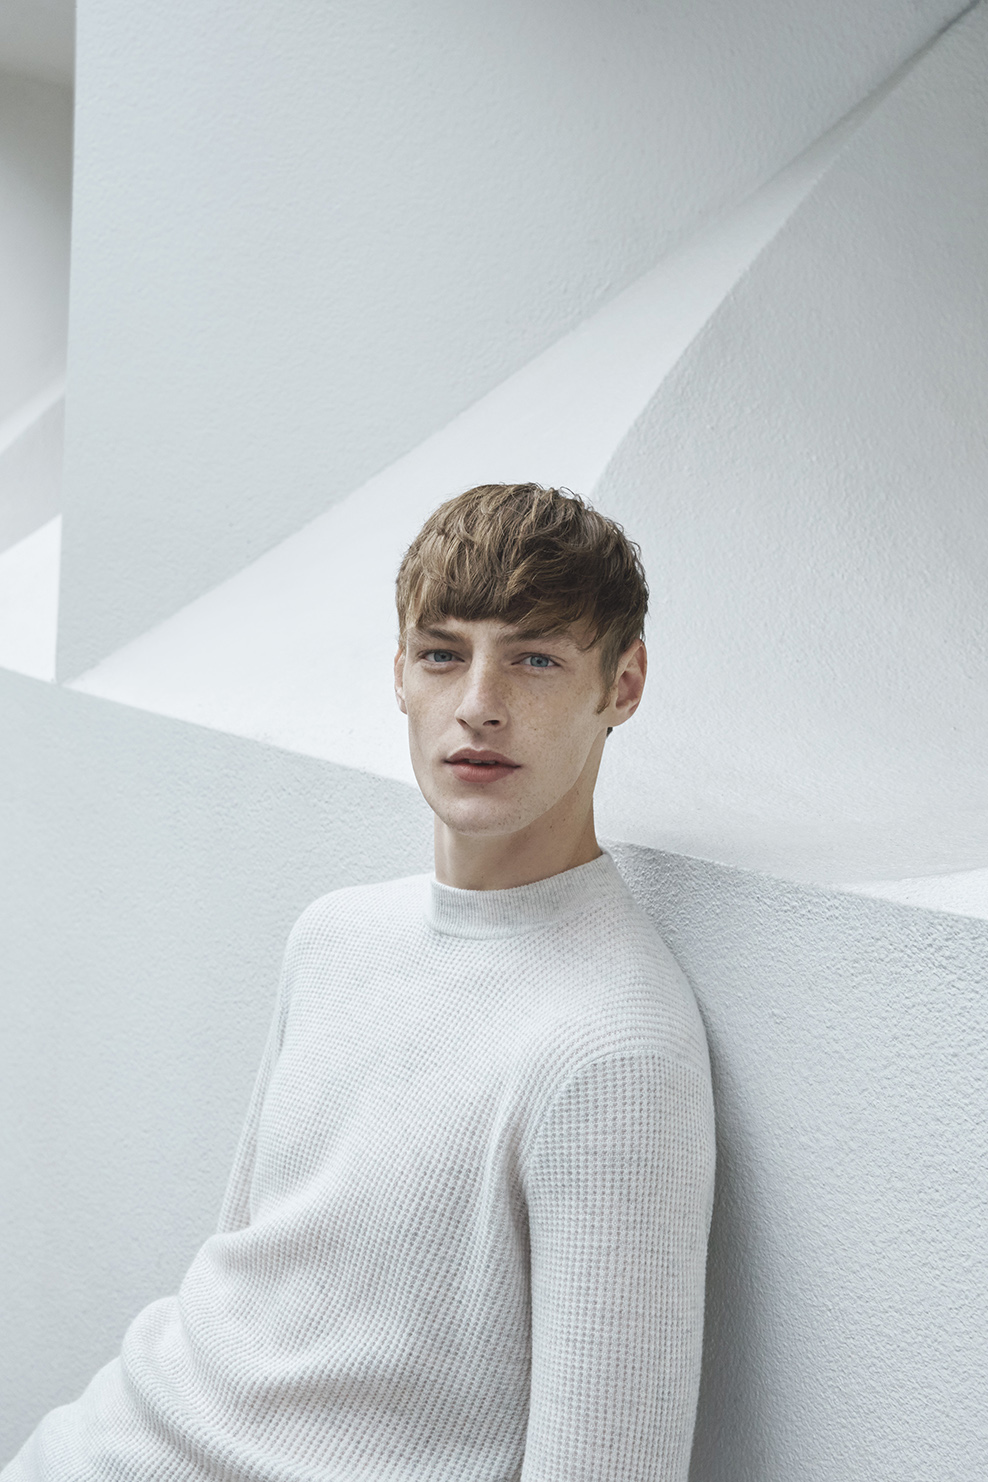 cos-agnes-martin-guggenheim-fw2016-lookbook-mens-womens-3